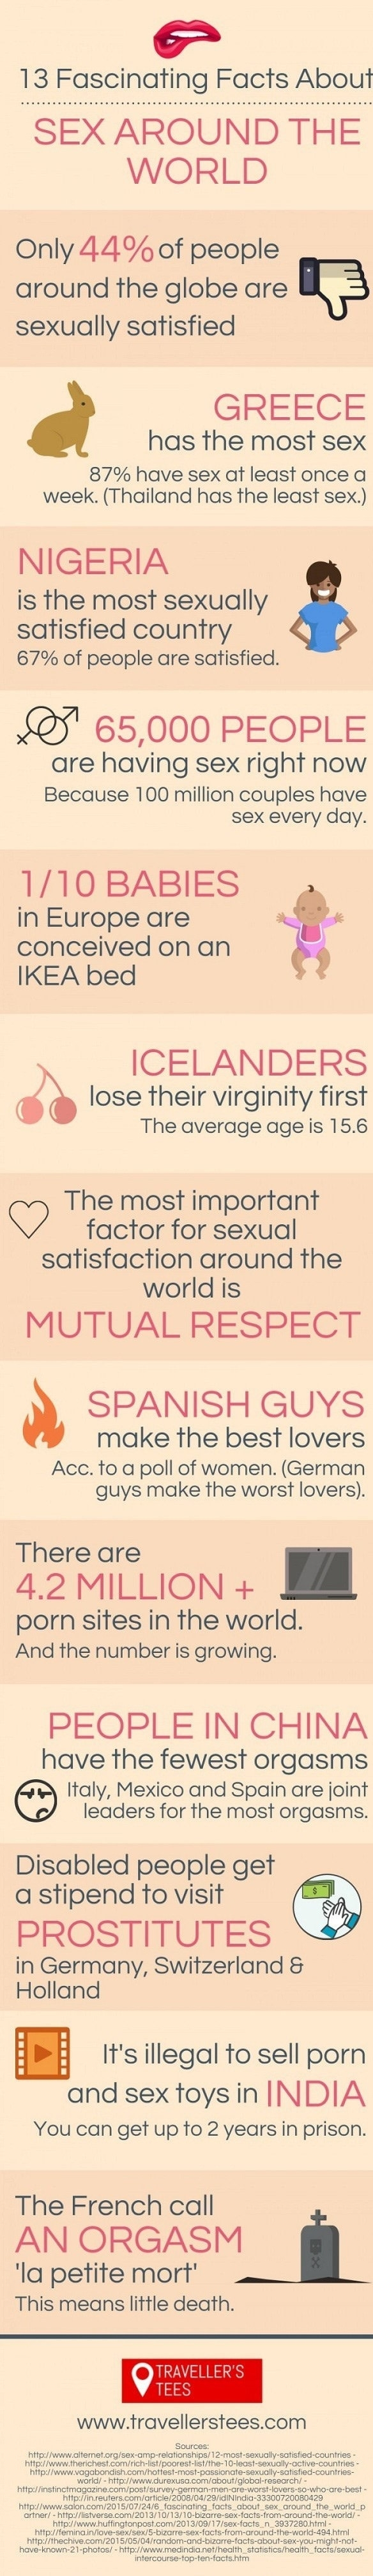 S*x facts from around the world